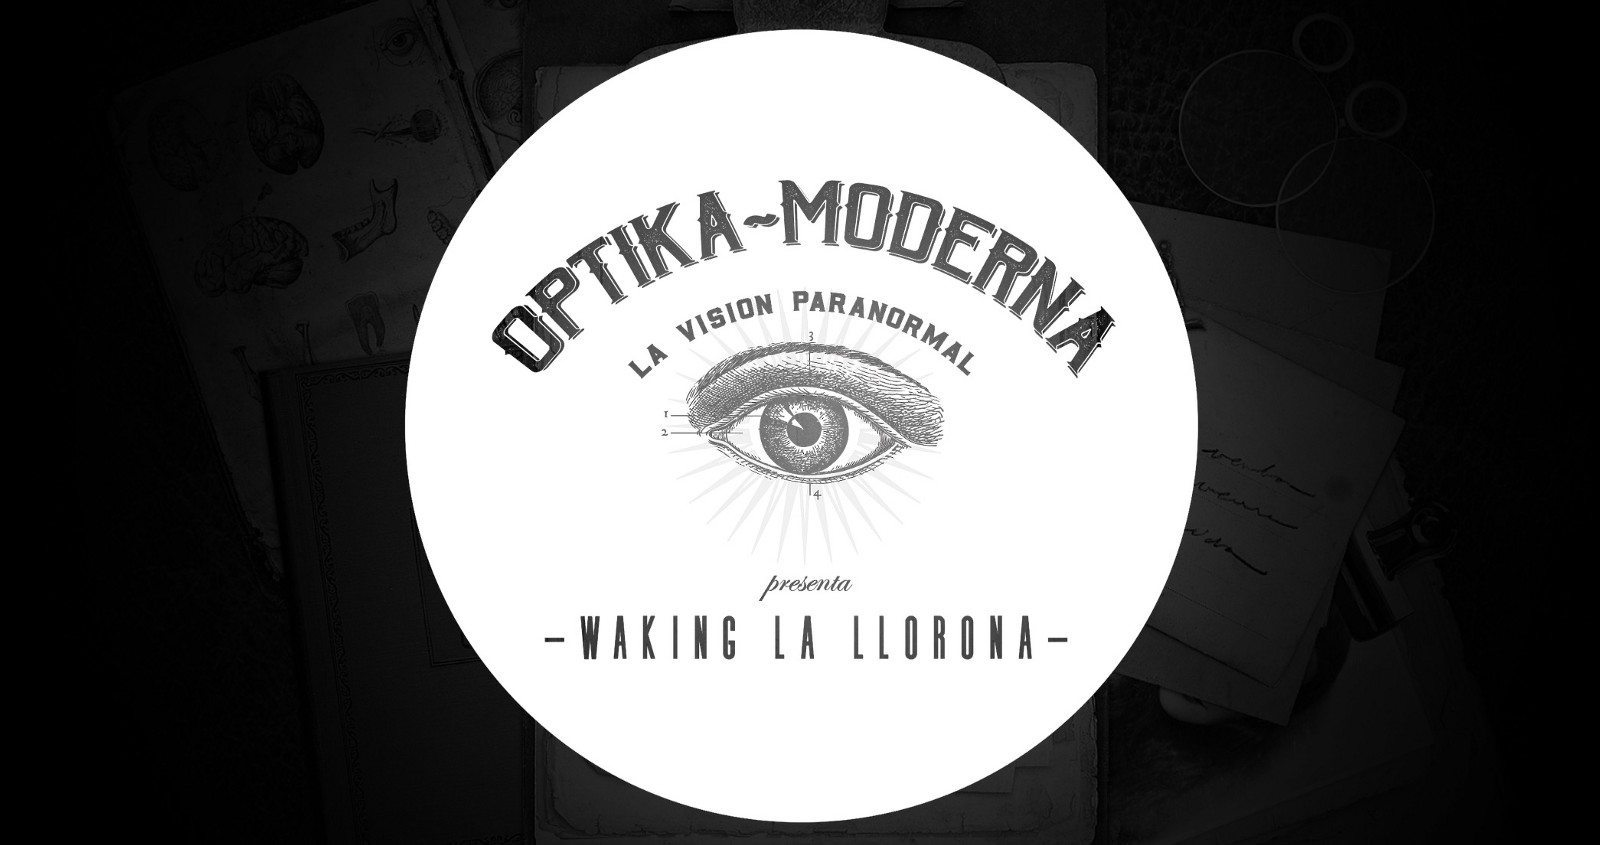 Optika Moderna - Immersive Theater - Waking La Llorona